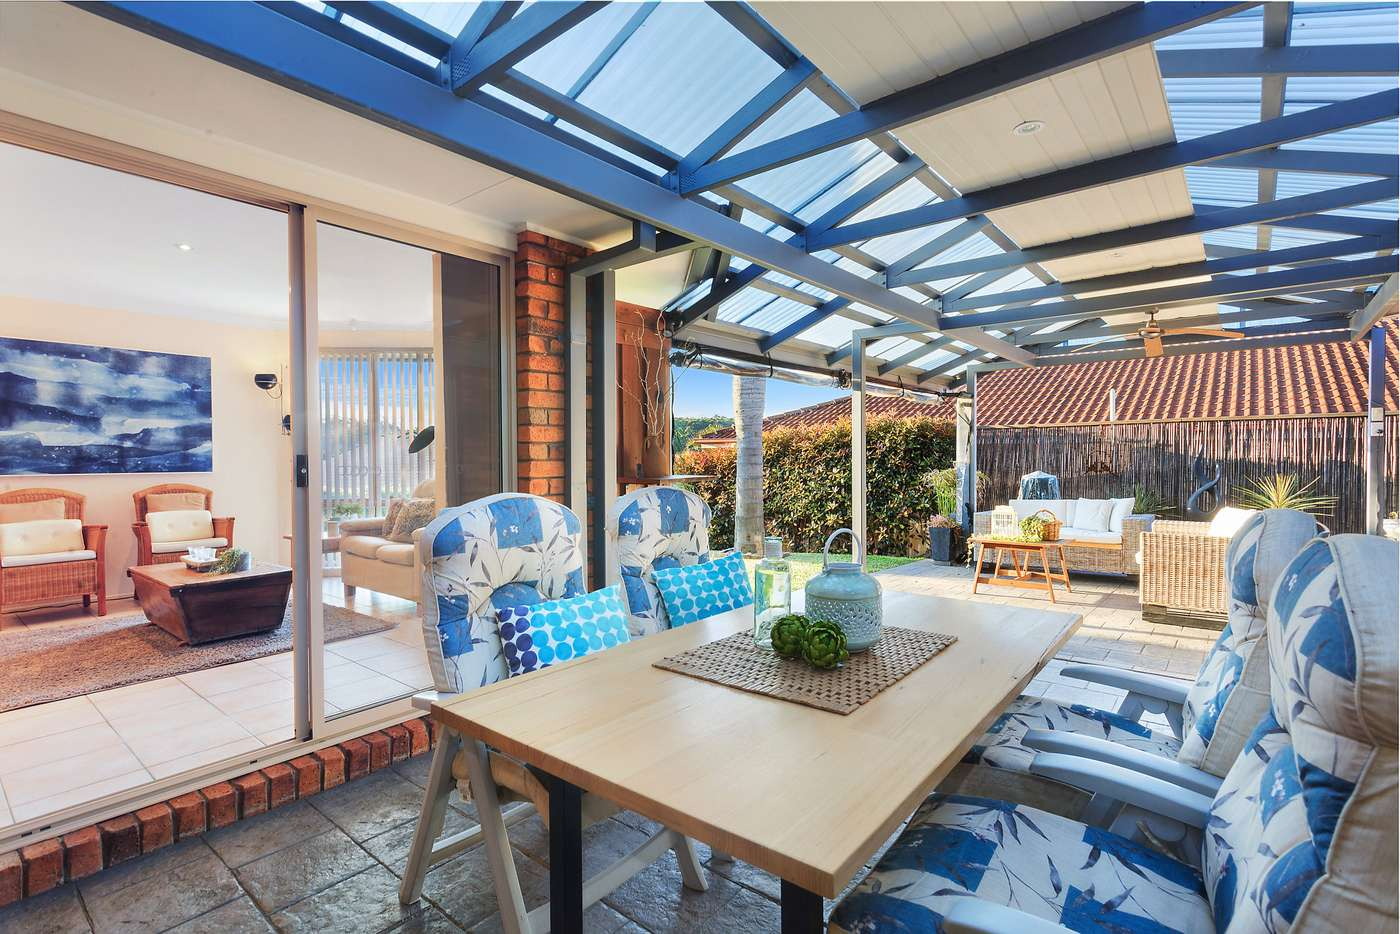 Main view of Homely house listing, 3 Clifford Close, Mollymook NSW 2539